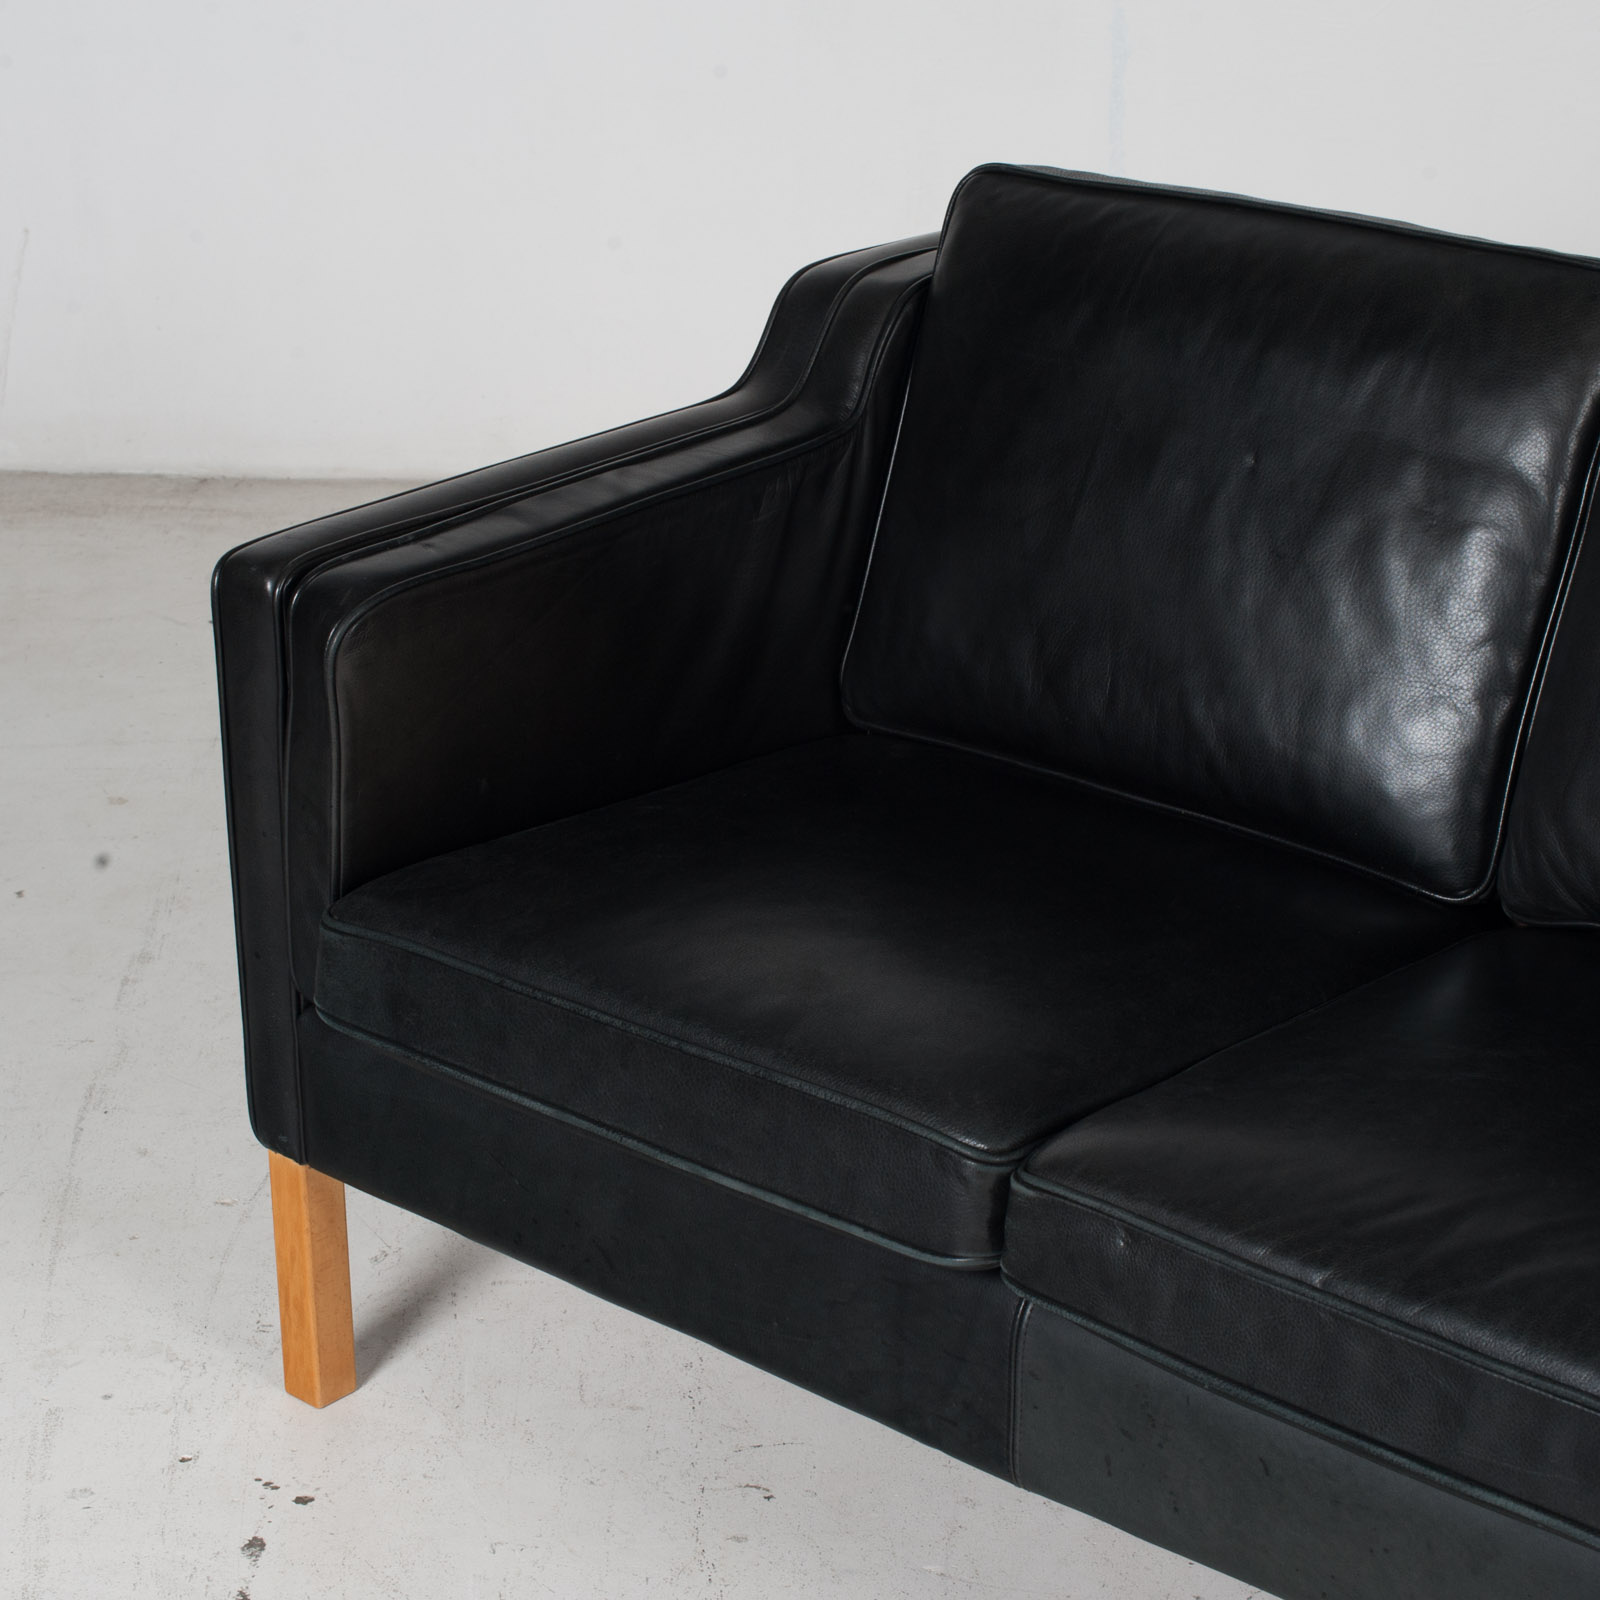 2 Seat Sofa By Stouby In Black Leather, 1960s, Denmark 5